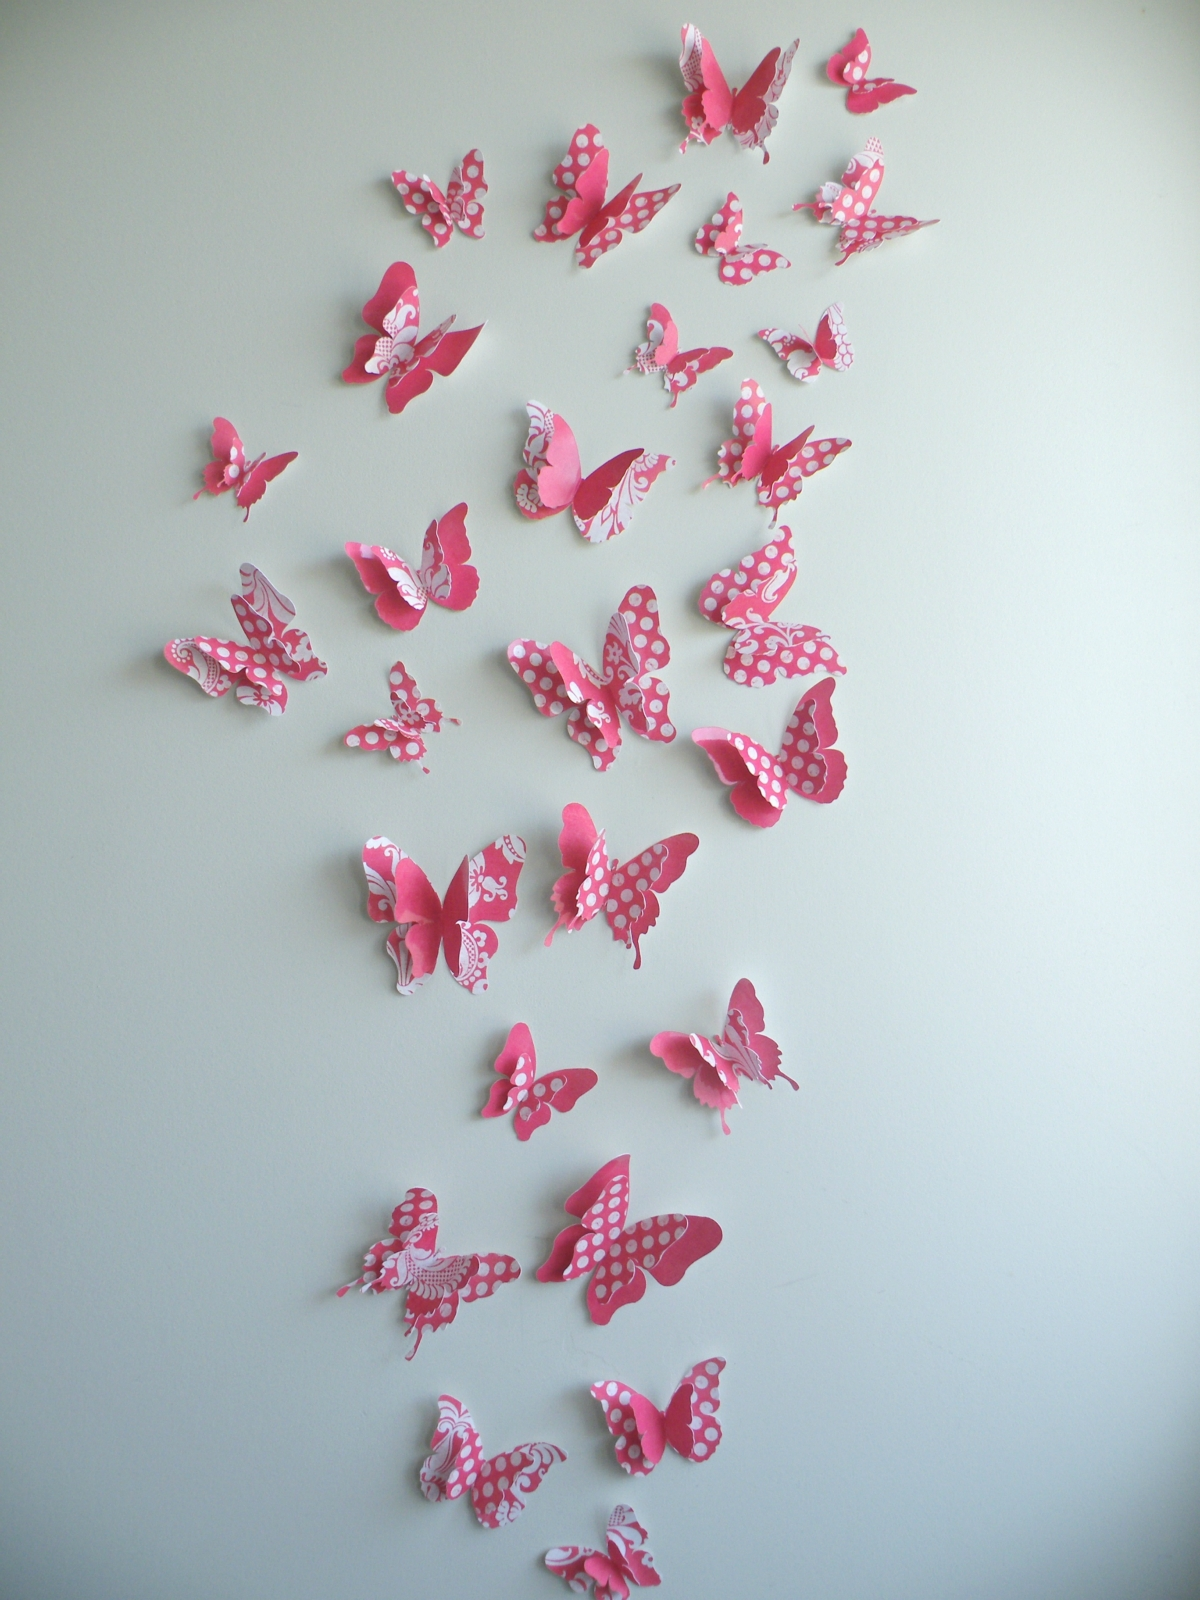 Hanging Butterfly Wall Decor : Butterfly wall decor